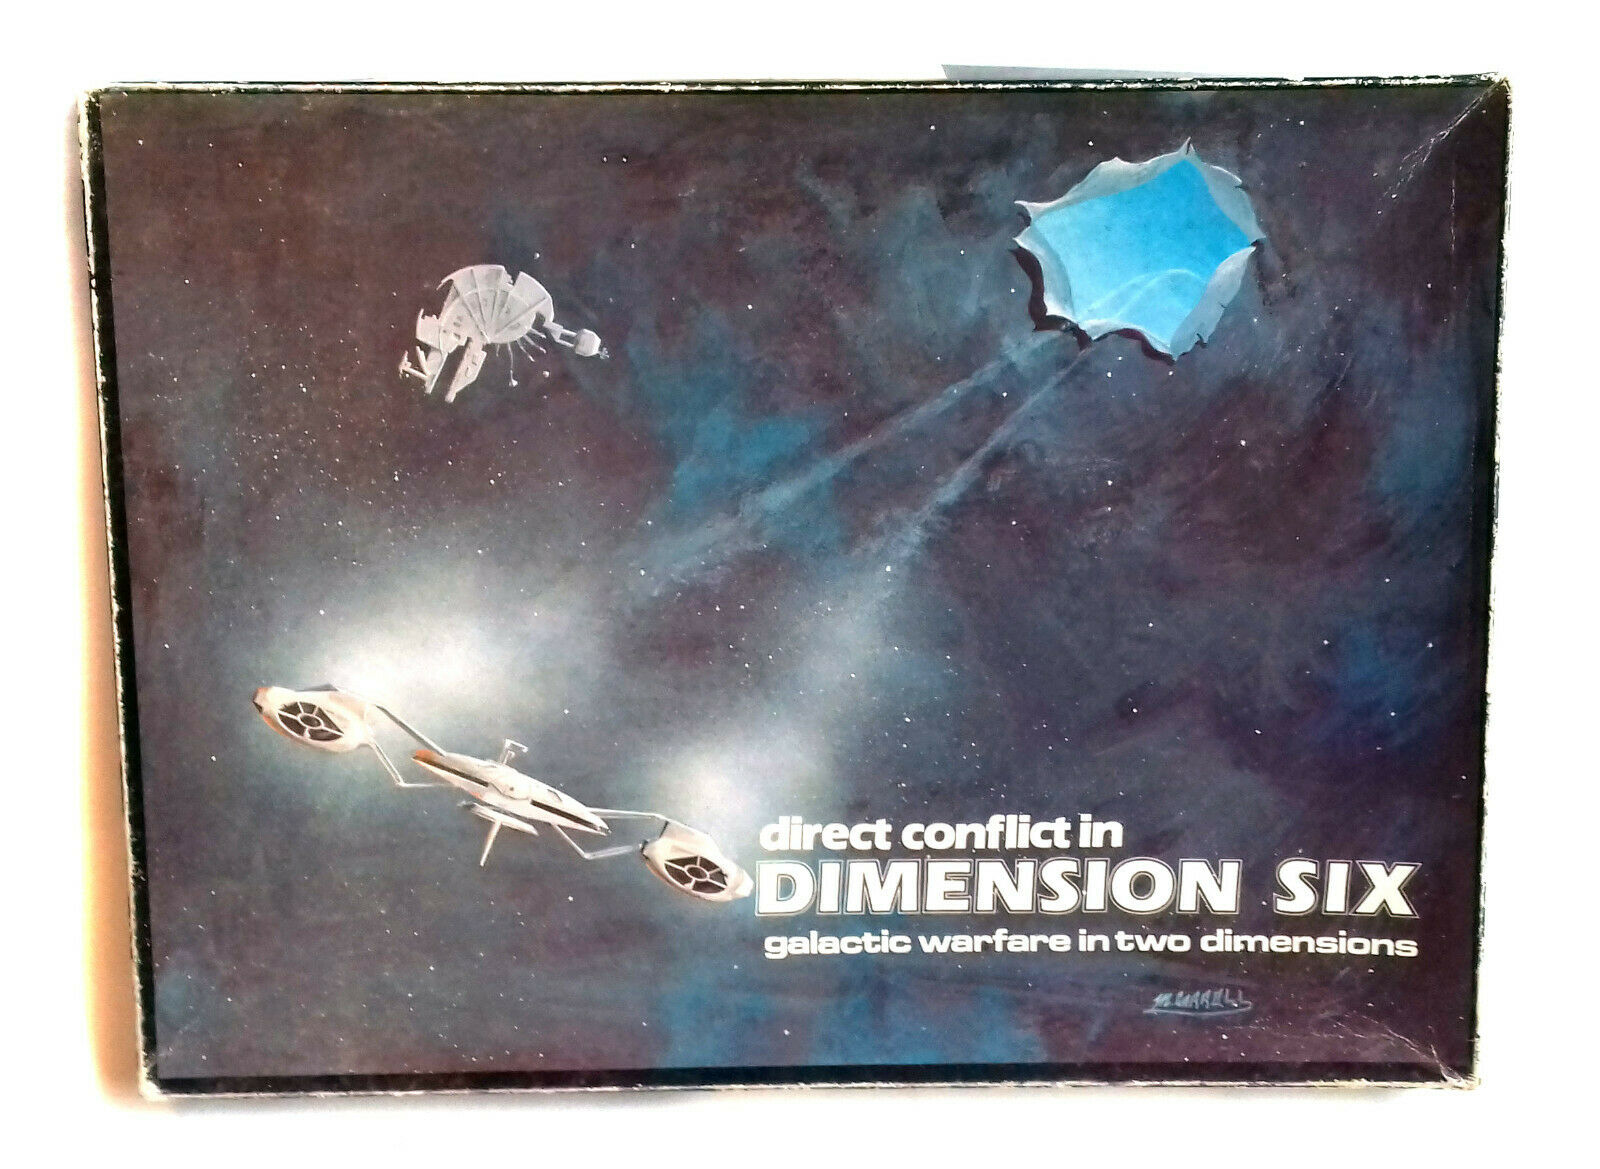 Vintage '77 Direct Conflict in Dimension 6 Galactic Warfare in 2D RPG Board Game